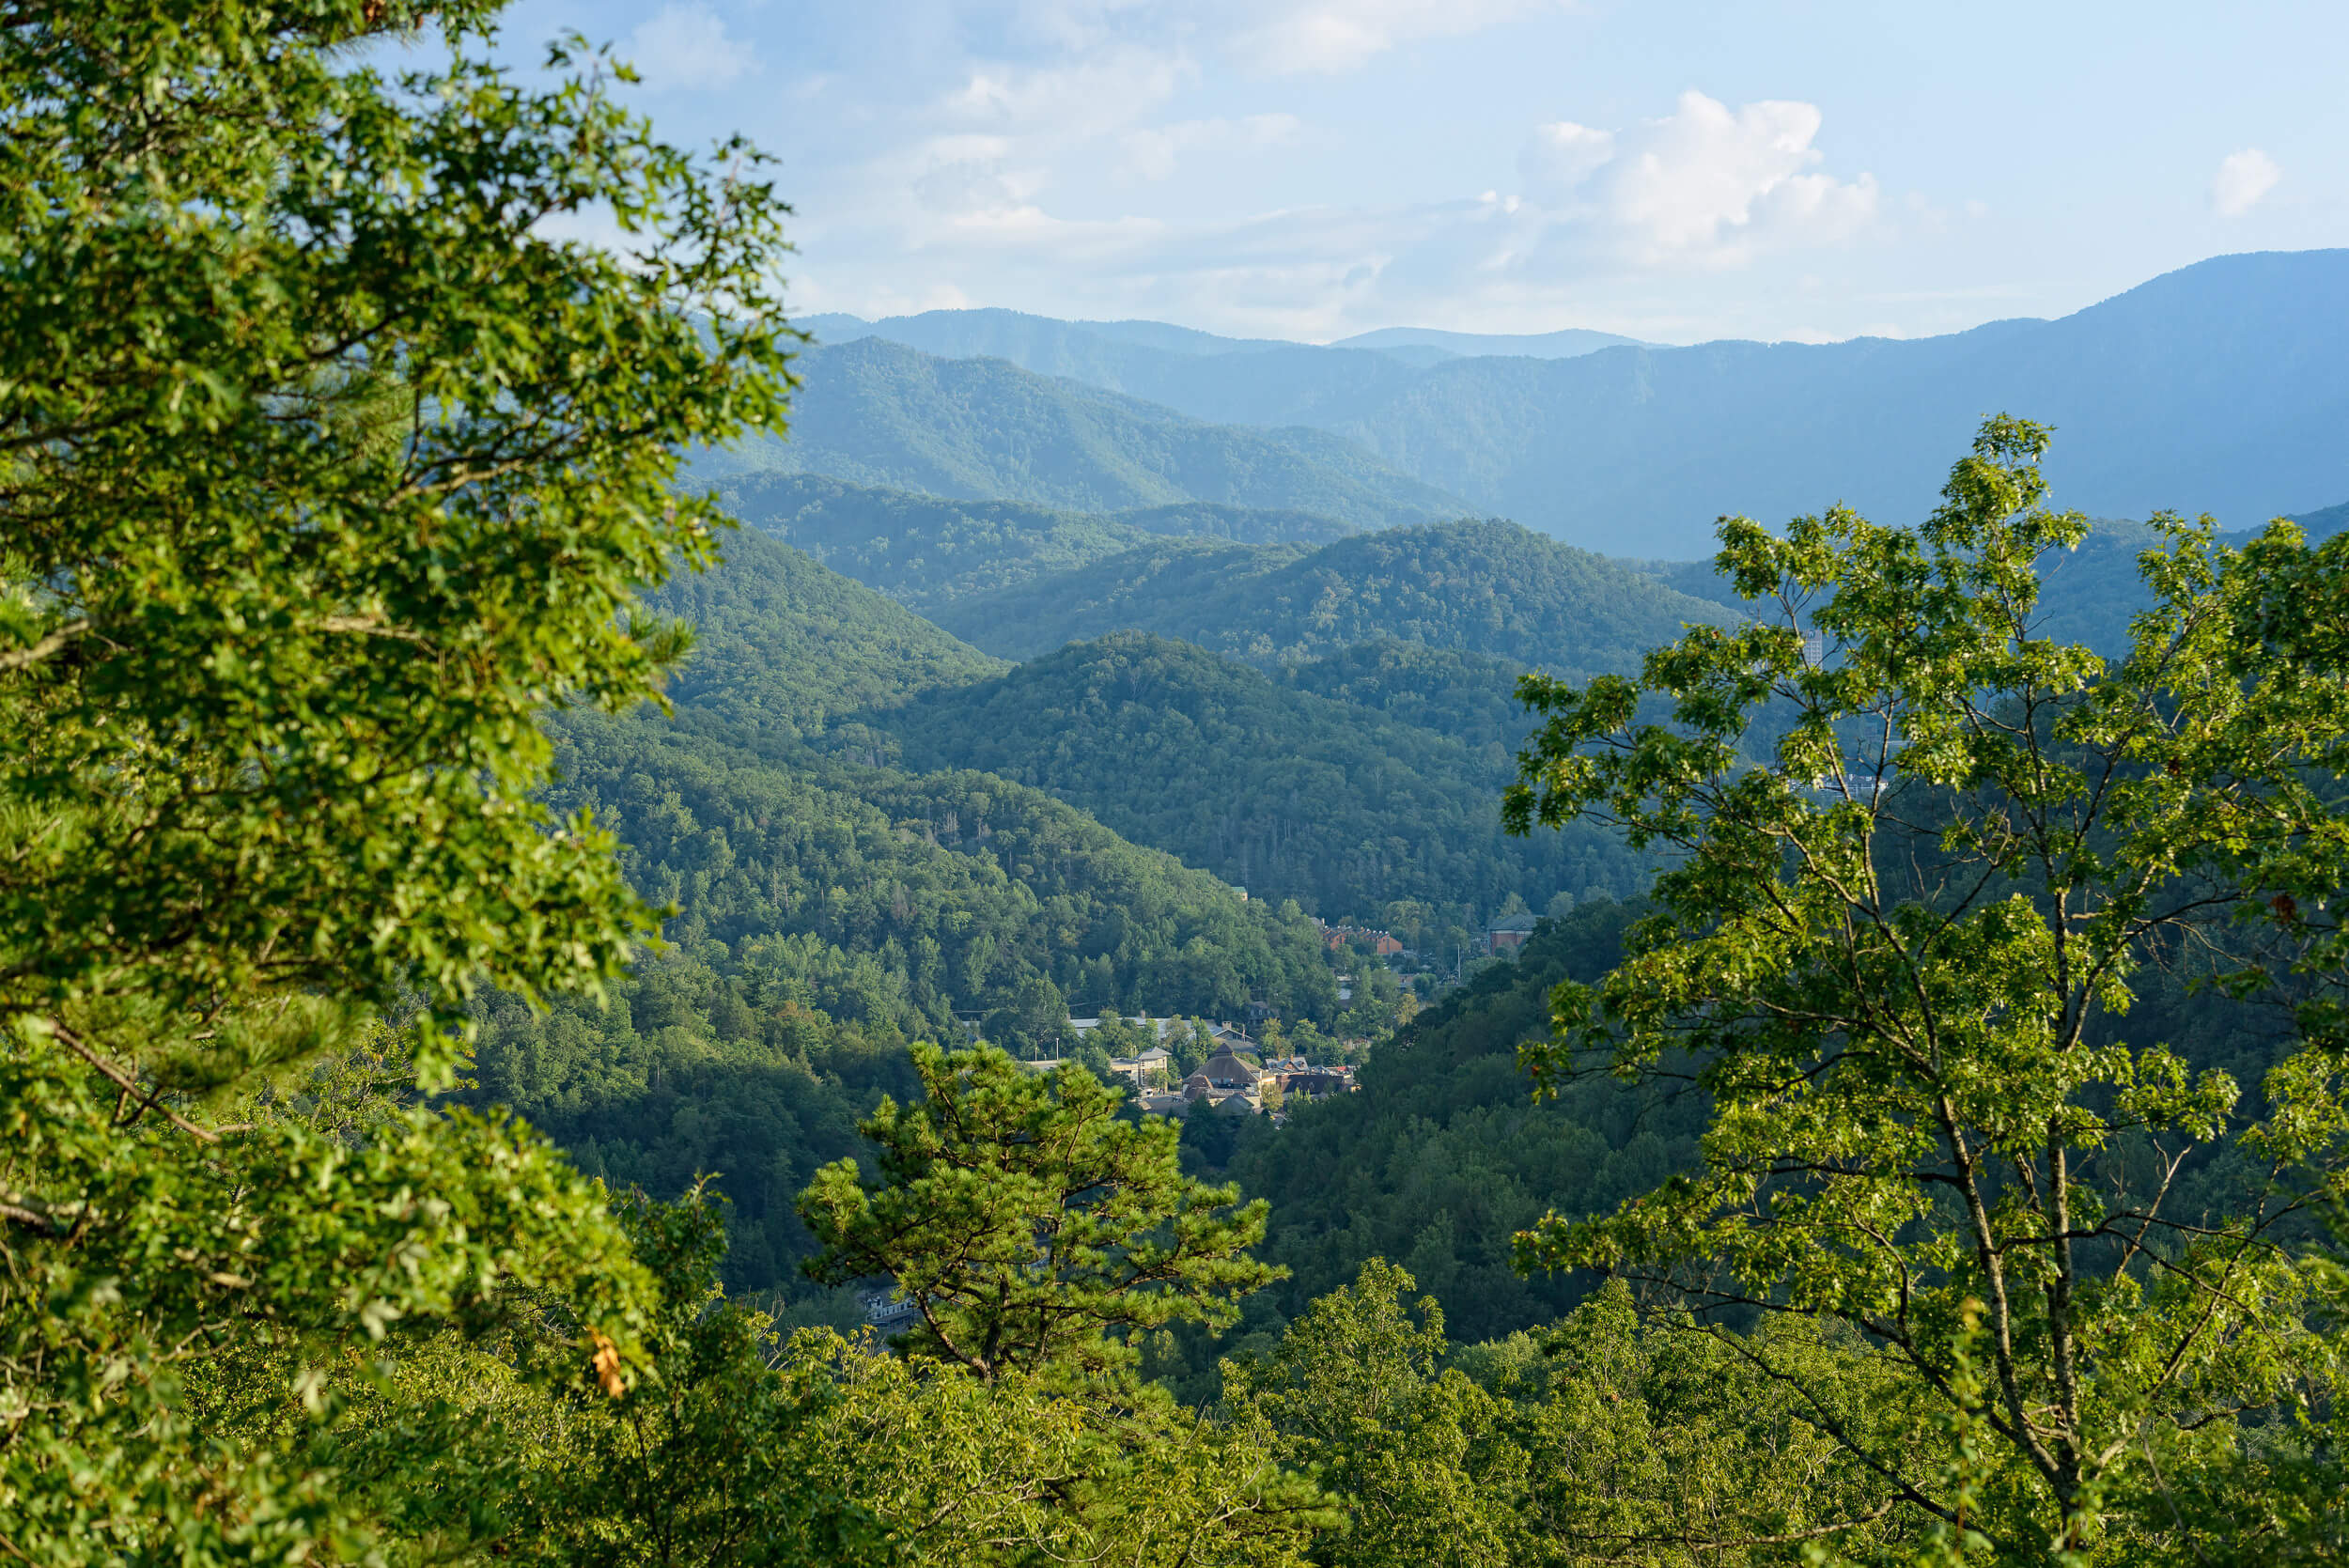 Top 10 Things to Do in Gatlinburg near the Smoky Mountains | Breathtaking Views